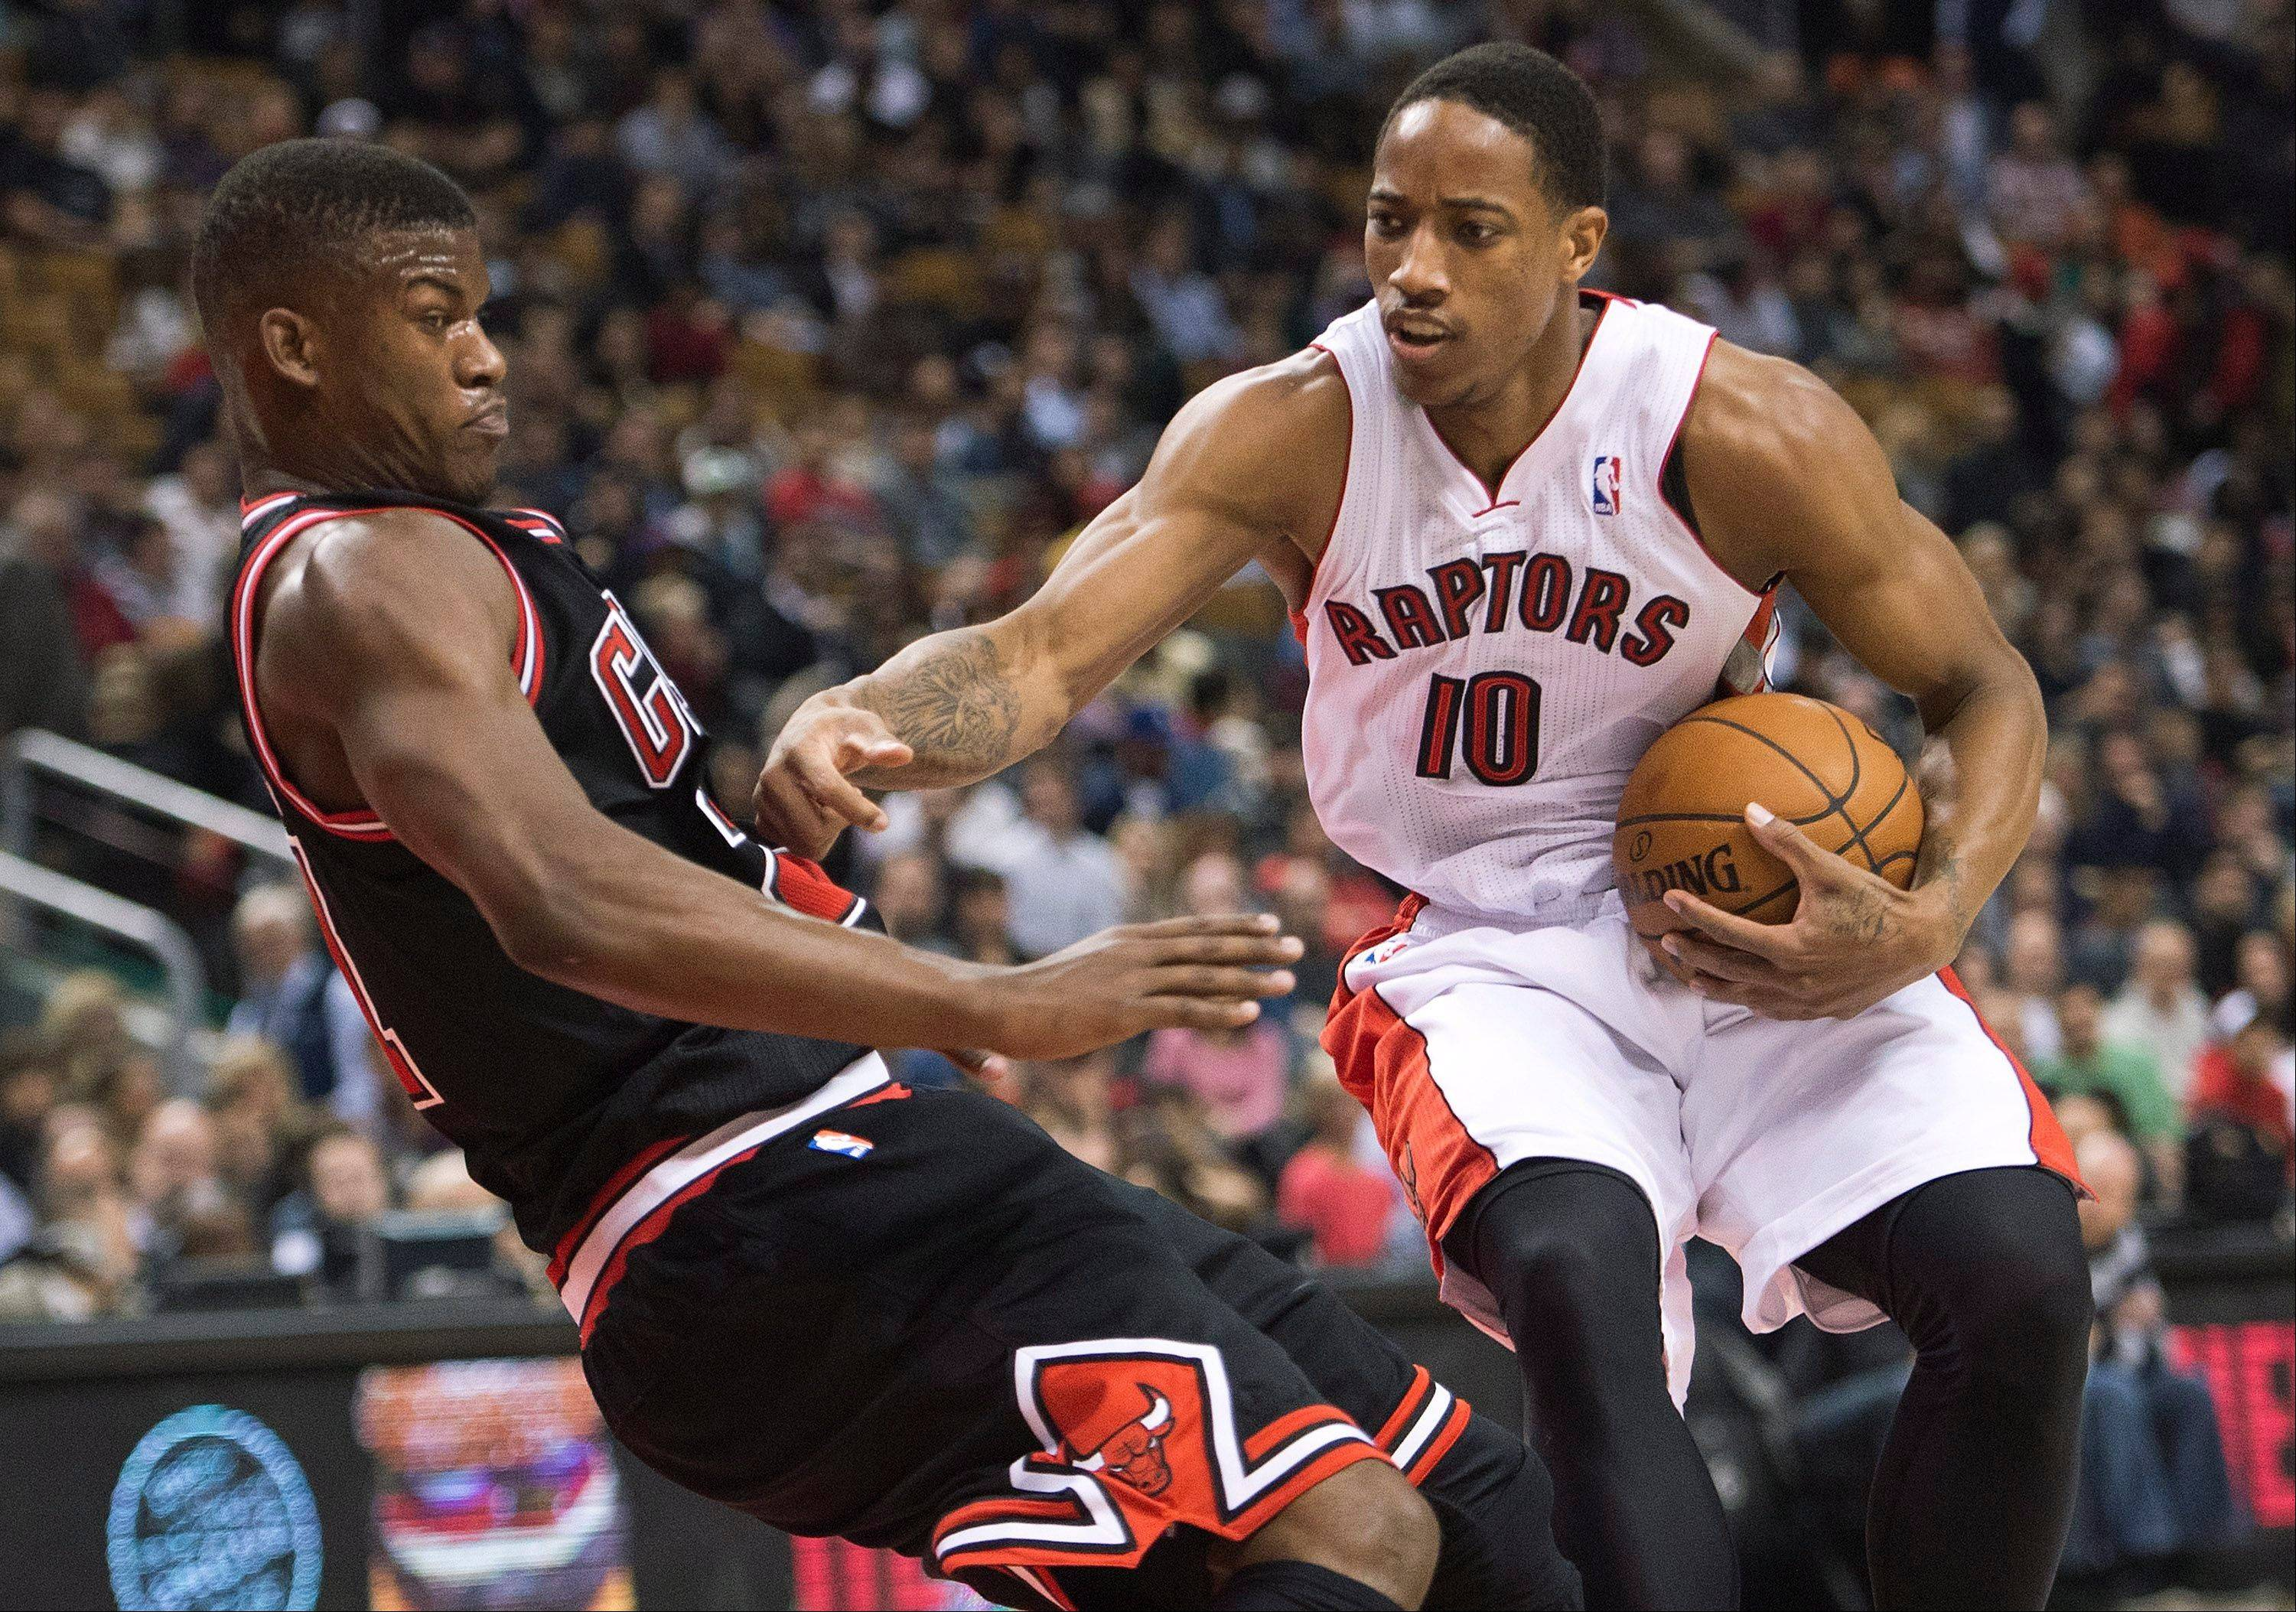 Toronto Raptors forward DeMar DeRozan, right, knocks down Chicago Bulls forward forward Jimmy Butler, left, during first-half NBA basketball game action in Toronto, Friday, Nov. 15, 2013.